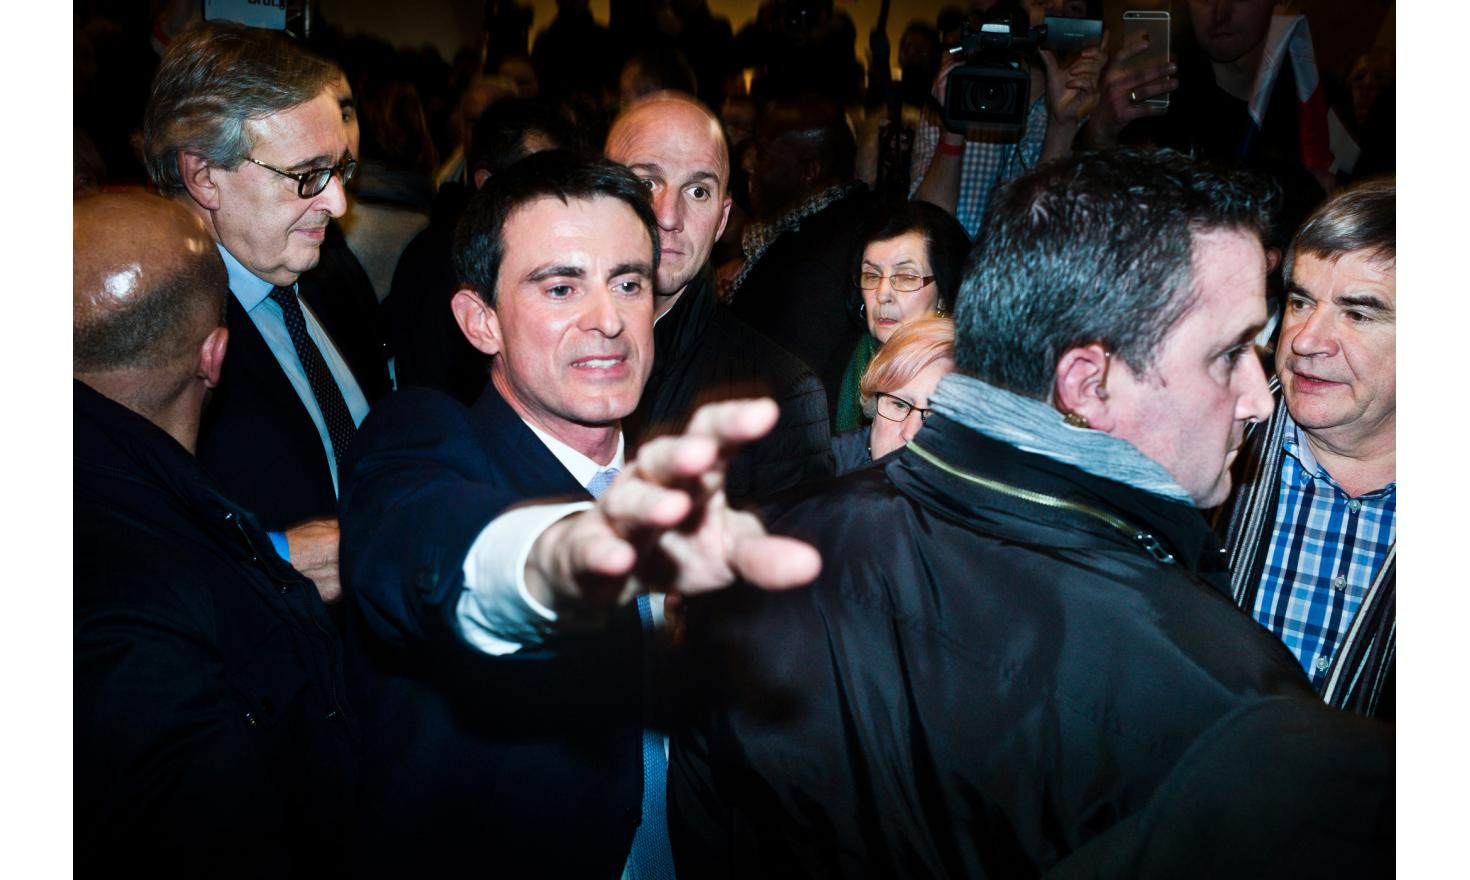 Manuel Valls in his last meeting, in Alfortville. A crowd at the end of the meeting.